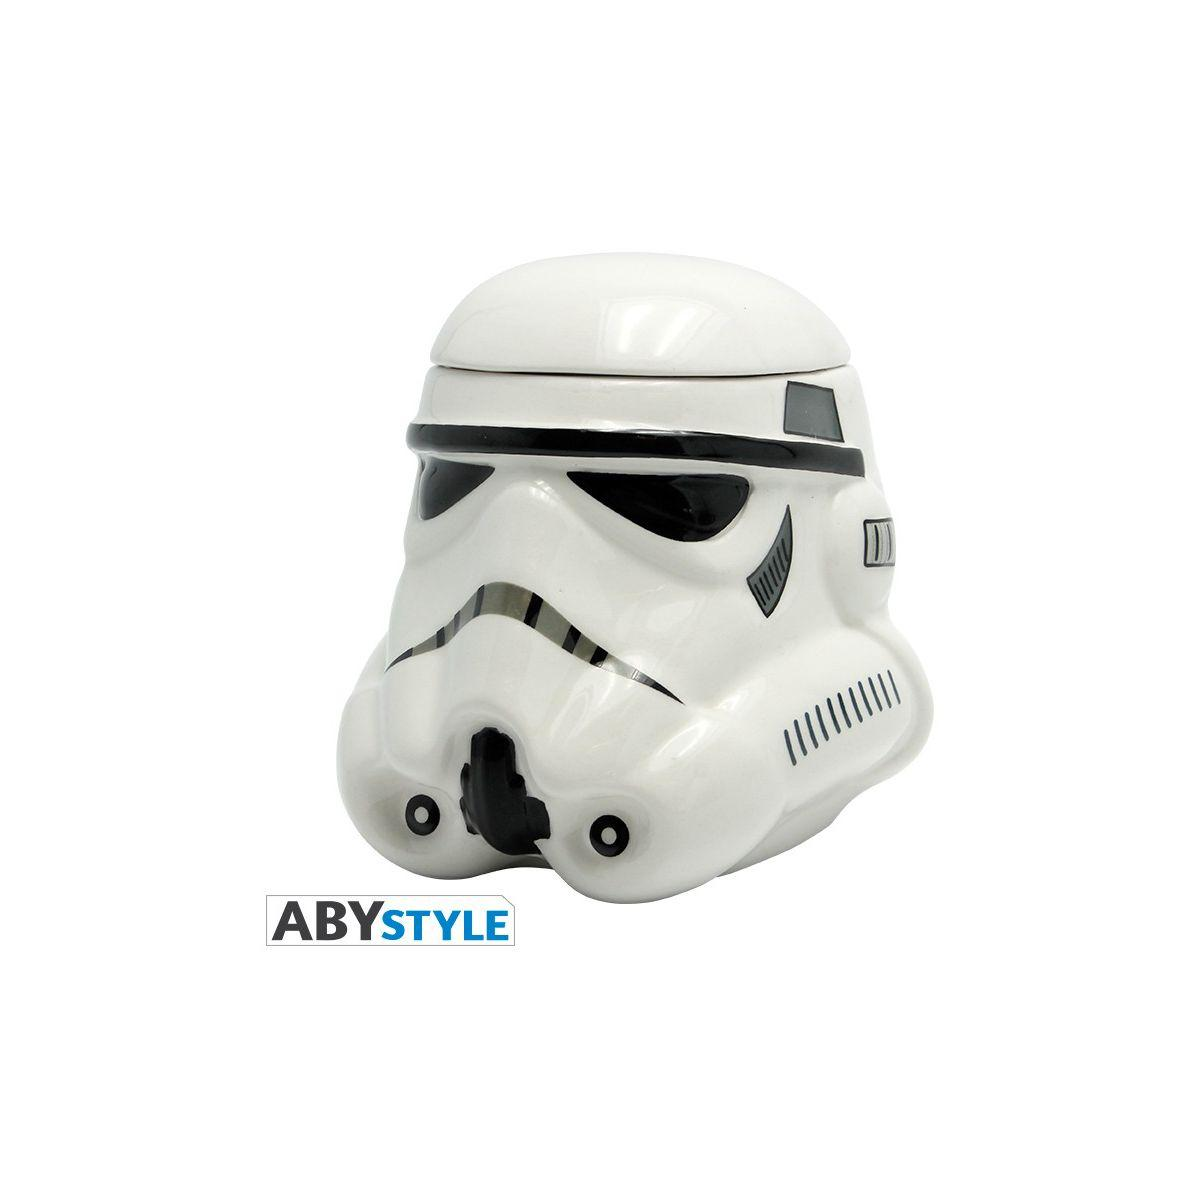 Figurine abystyle mug 3d storm trooper (photo)